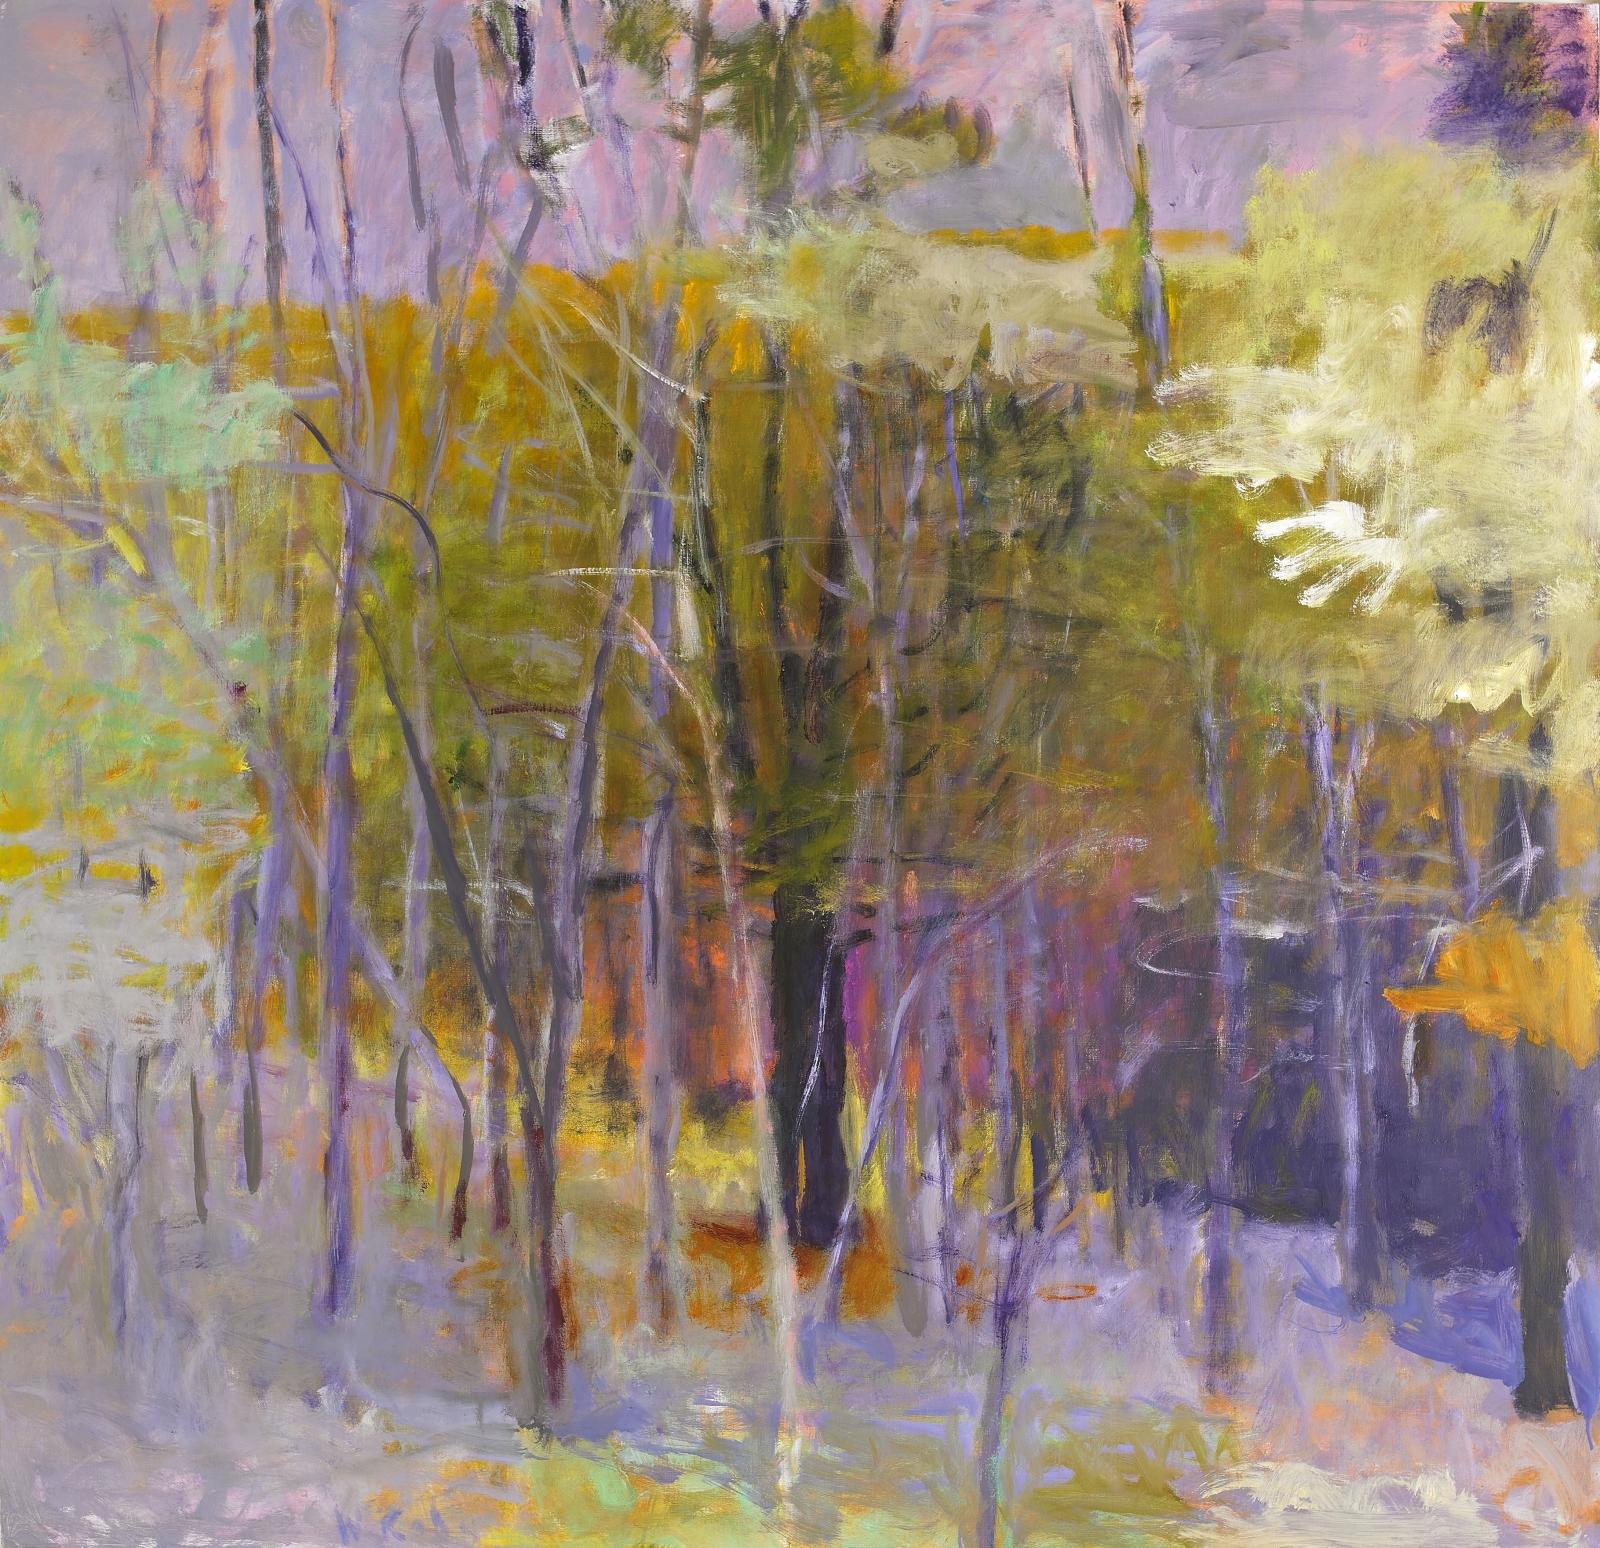 a landscape with trees in bright pastel colors